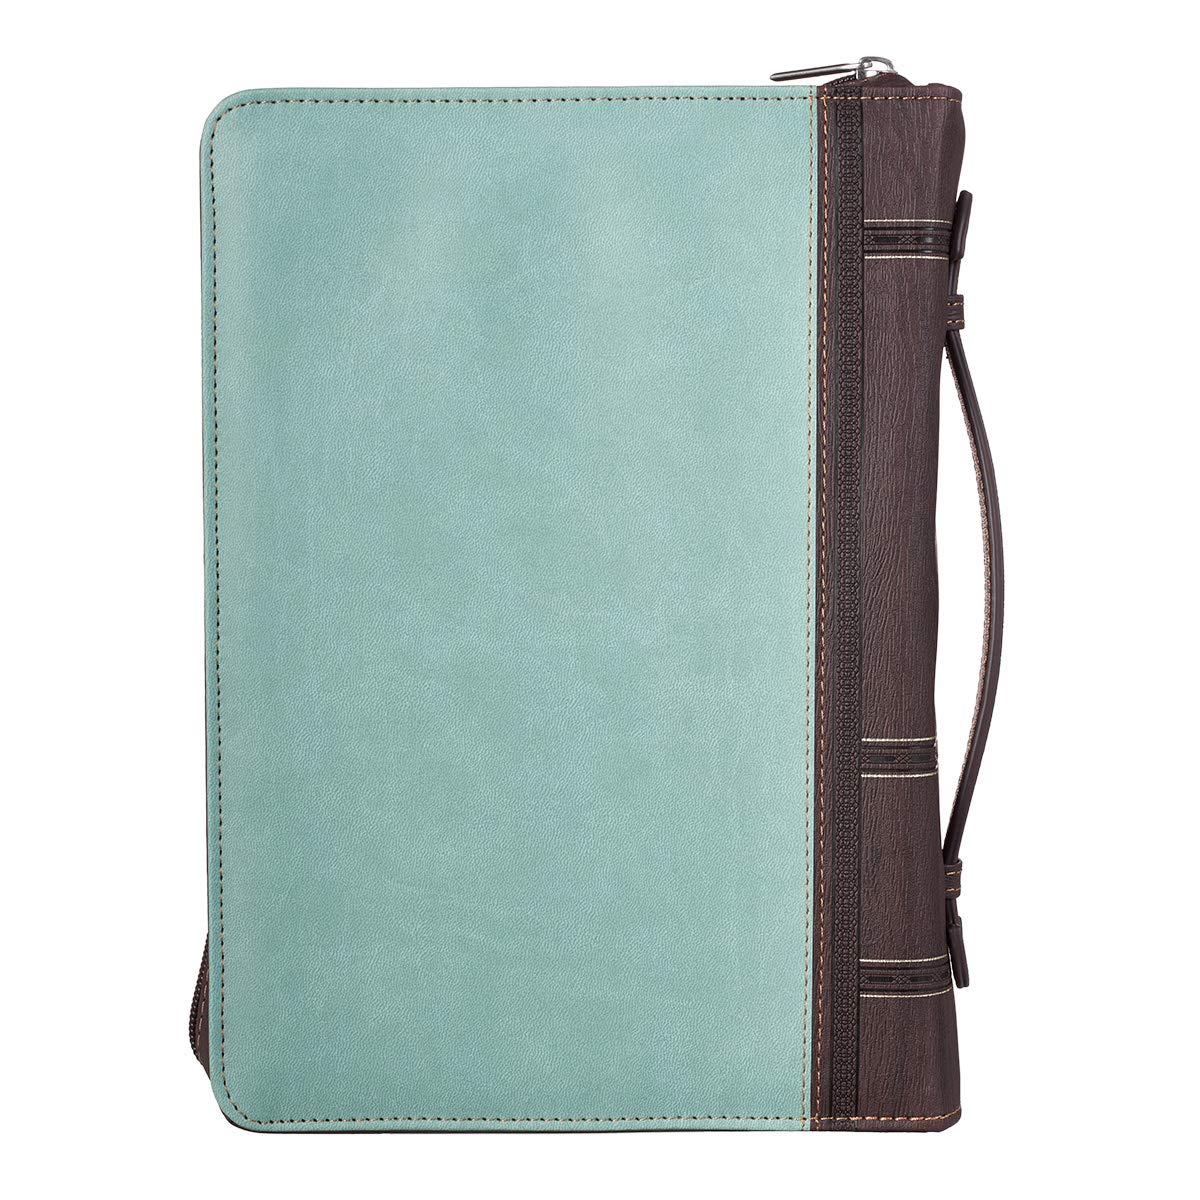 Bible Cover Blessed Is She Light Blue and Brown Medium